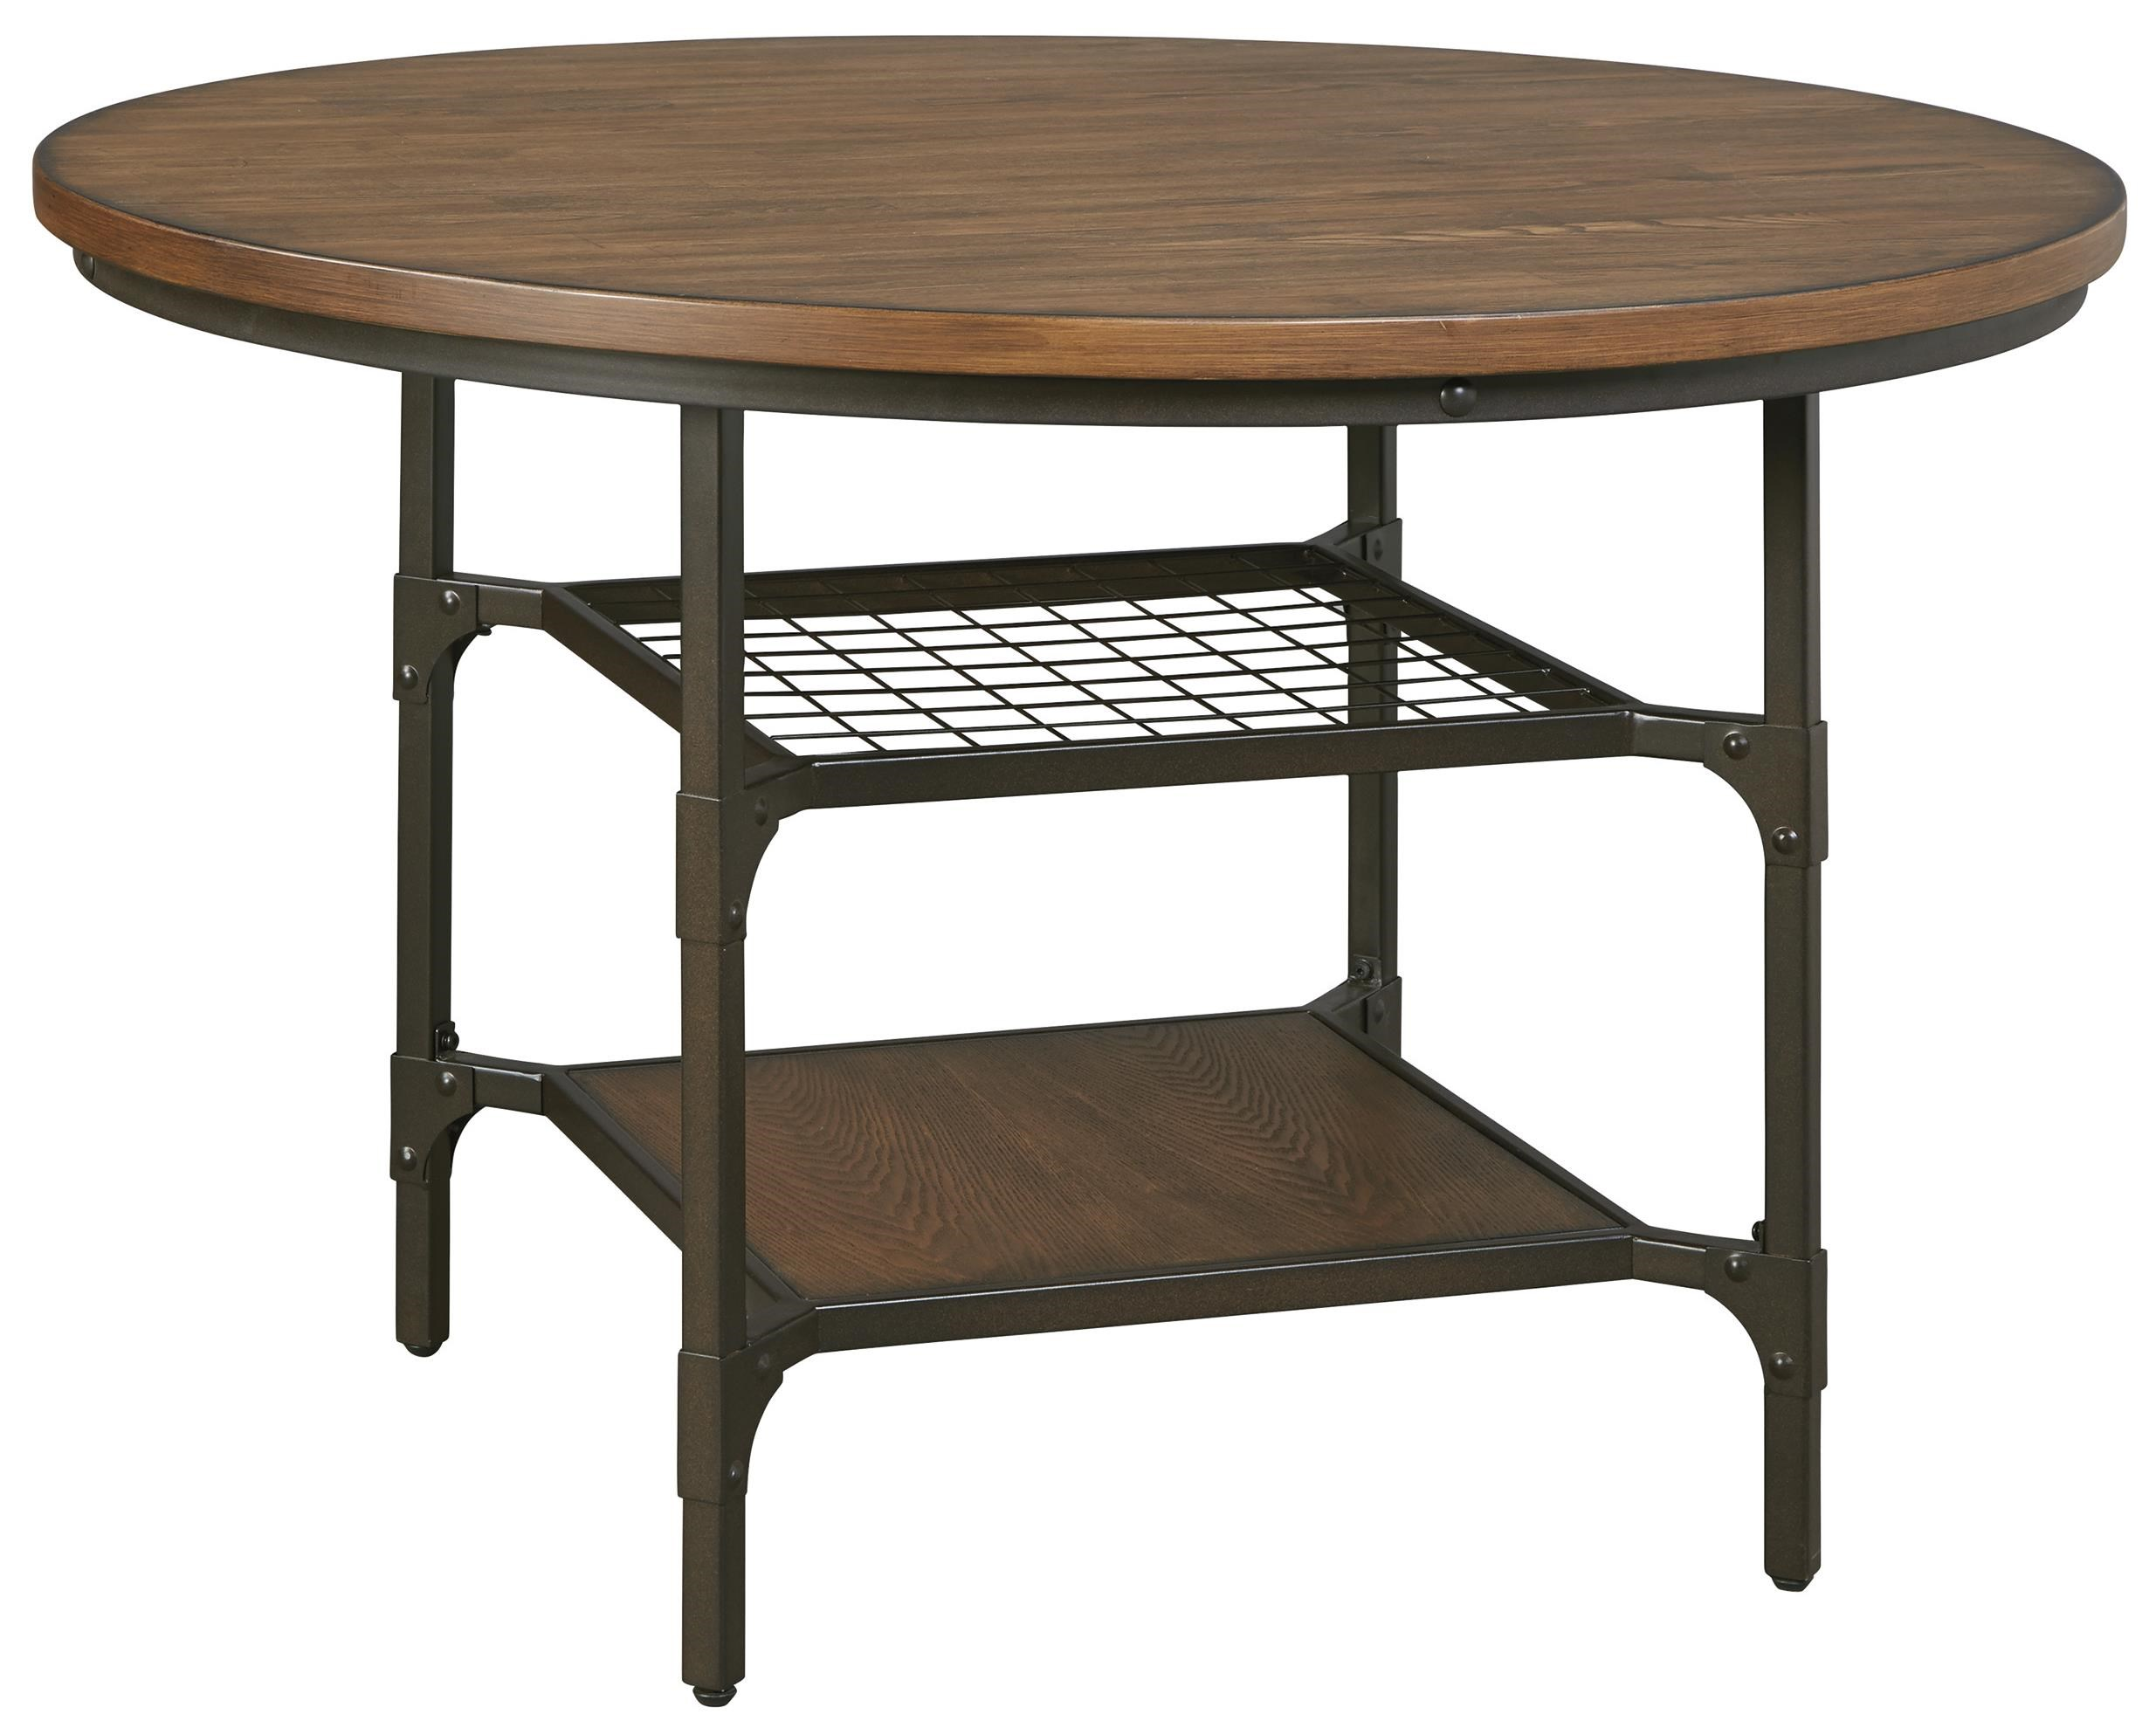 signature design by ashley rolena industrial metalwood round dining room table with 2 shelves